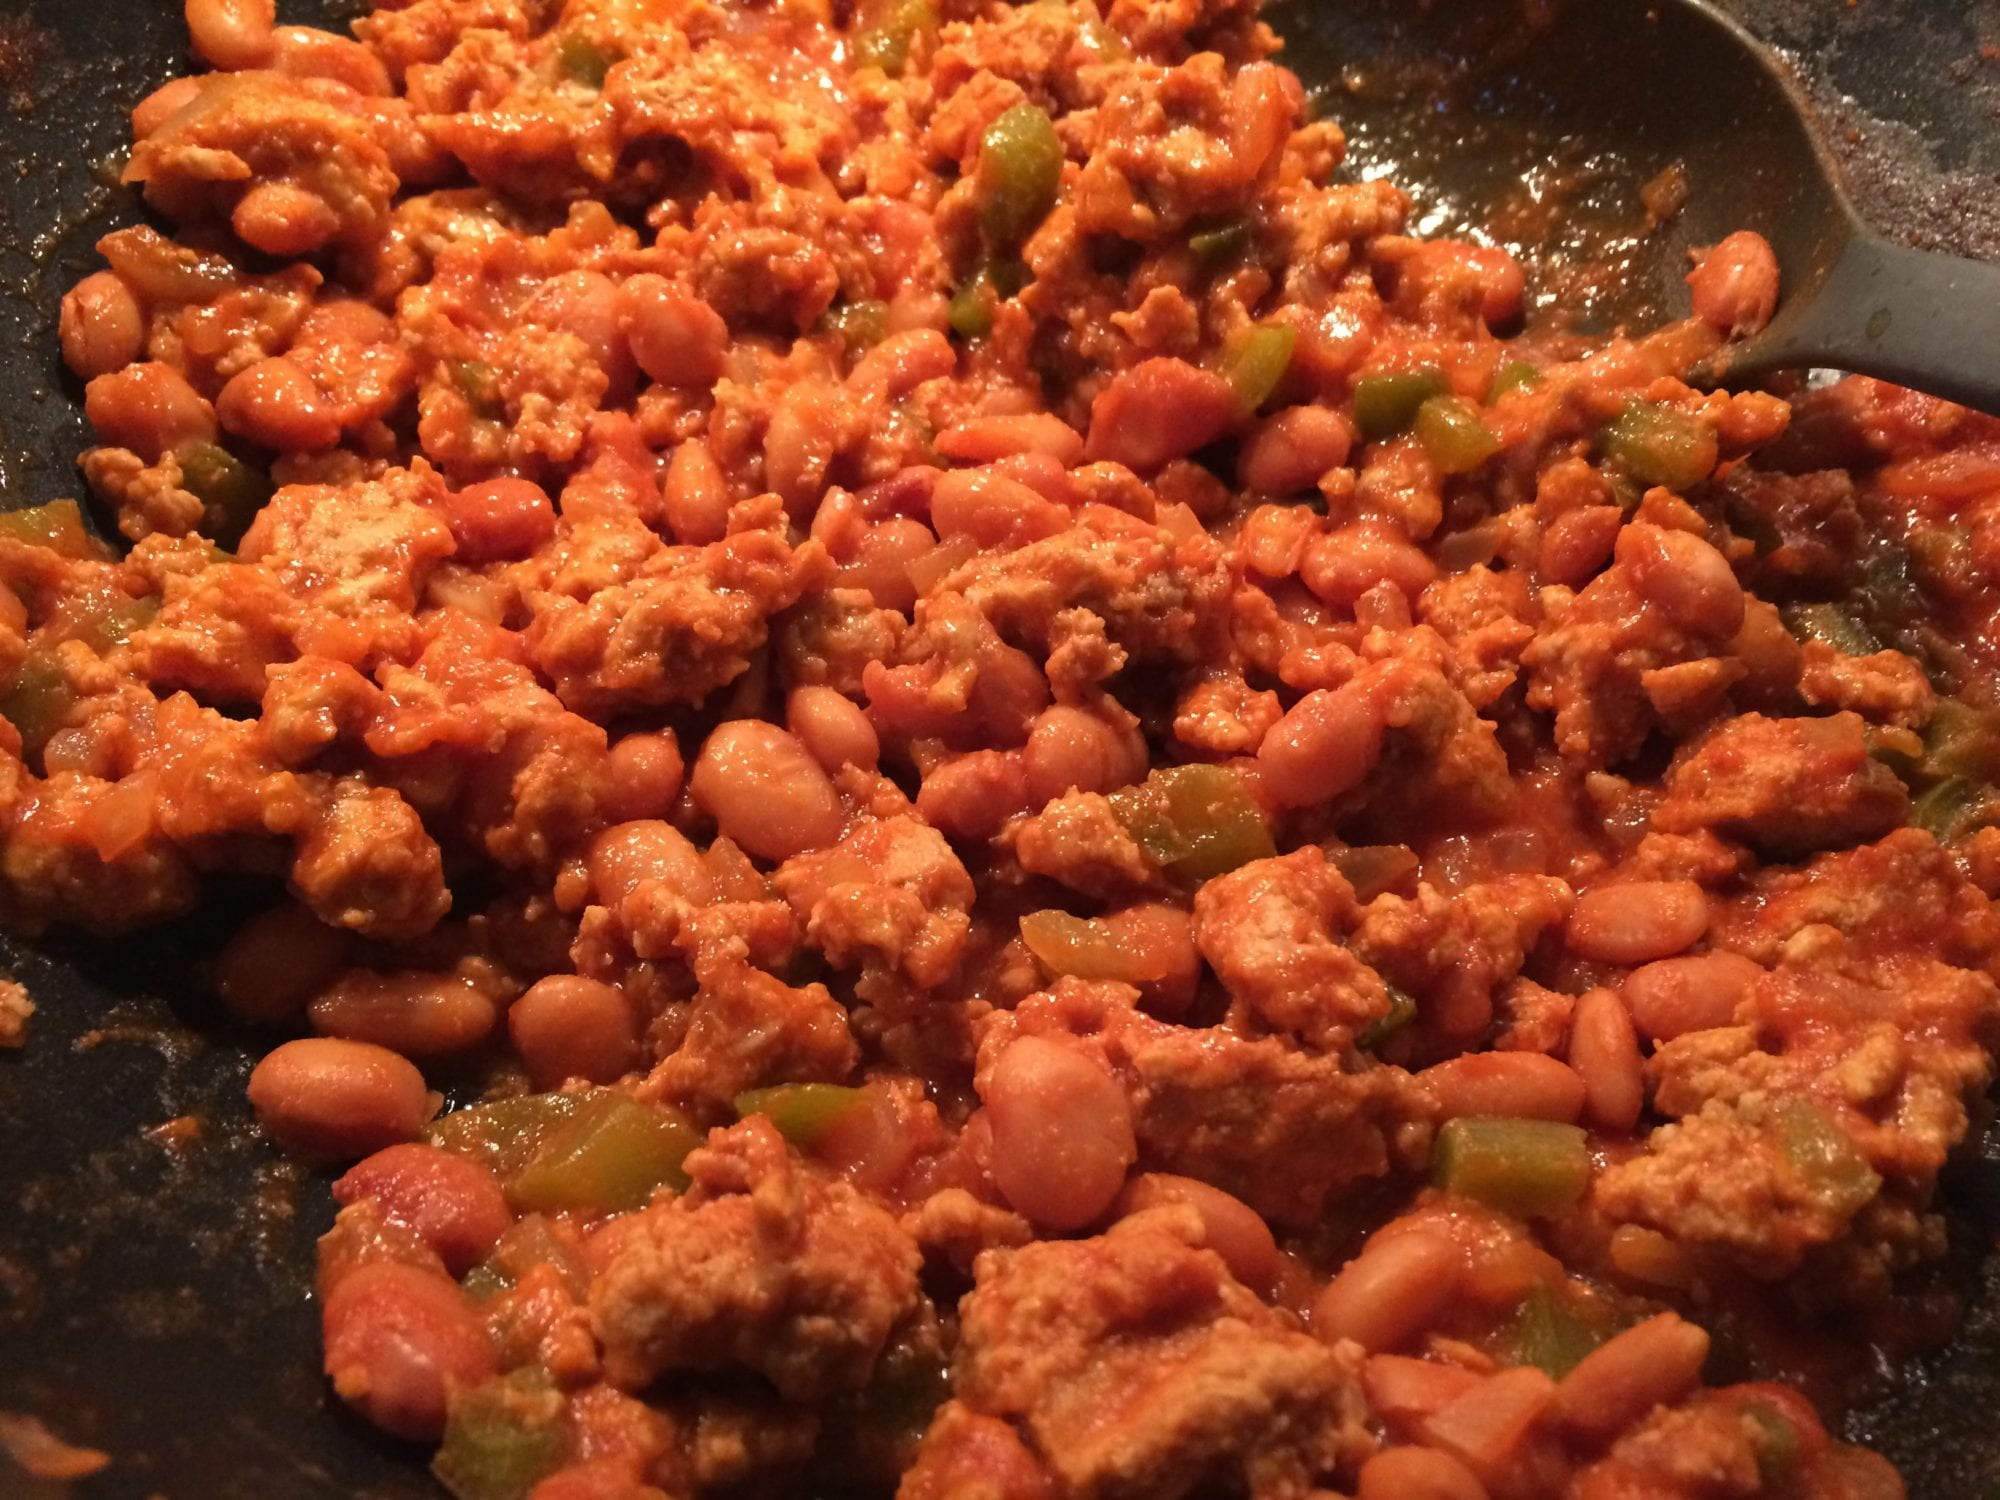 sloppy joes texmex sloppy joes sloppy joes vegan momma s sloppy joes ...